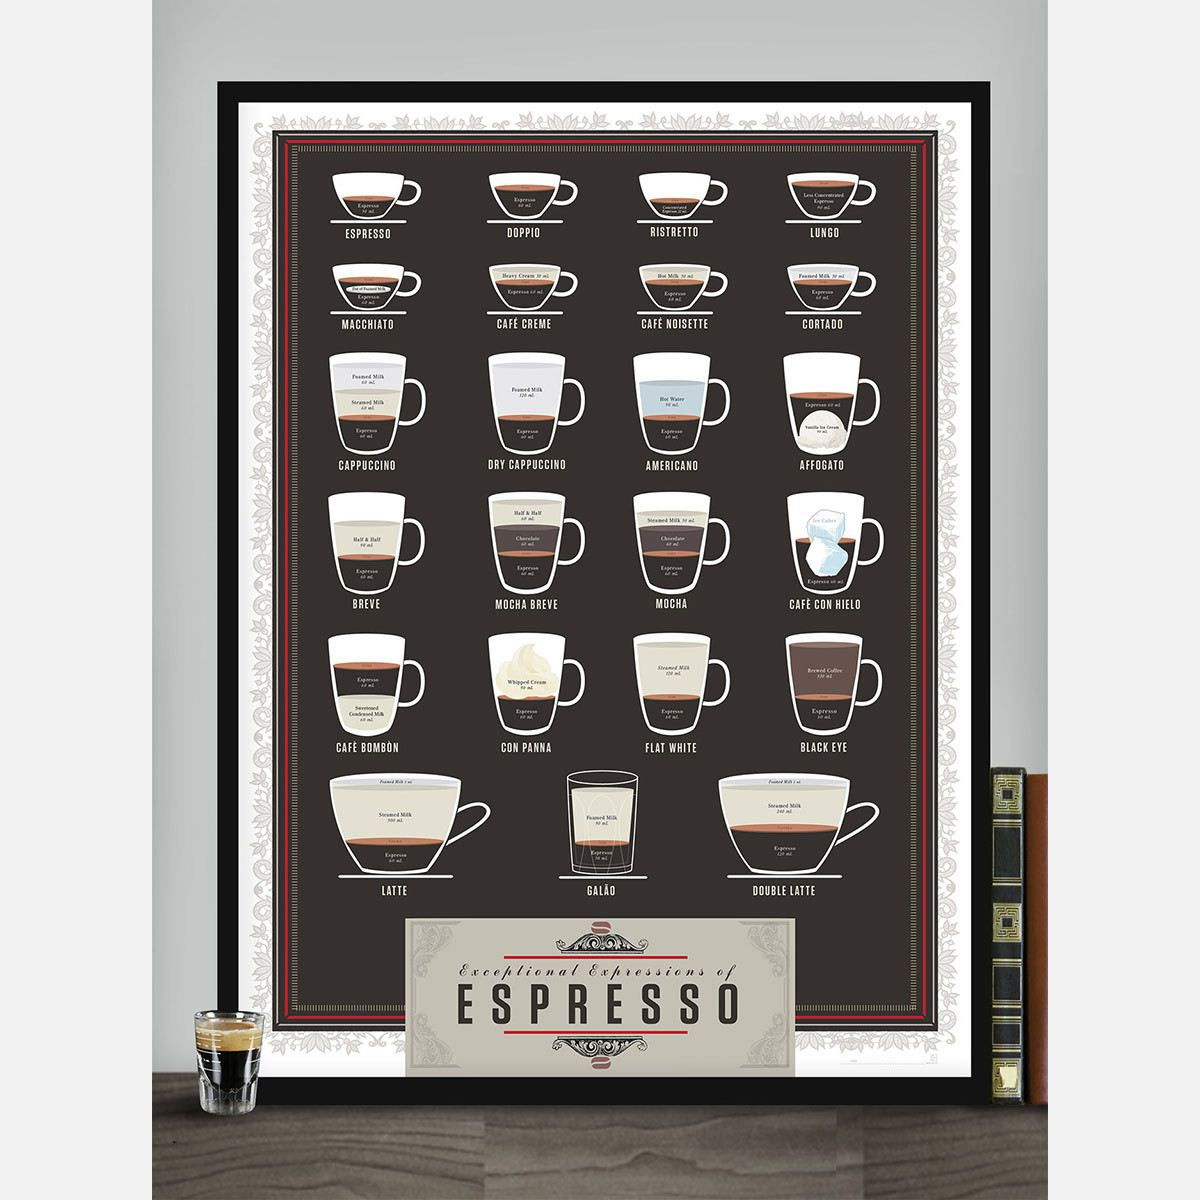 expressions-of-espresso-poster